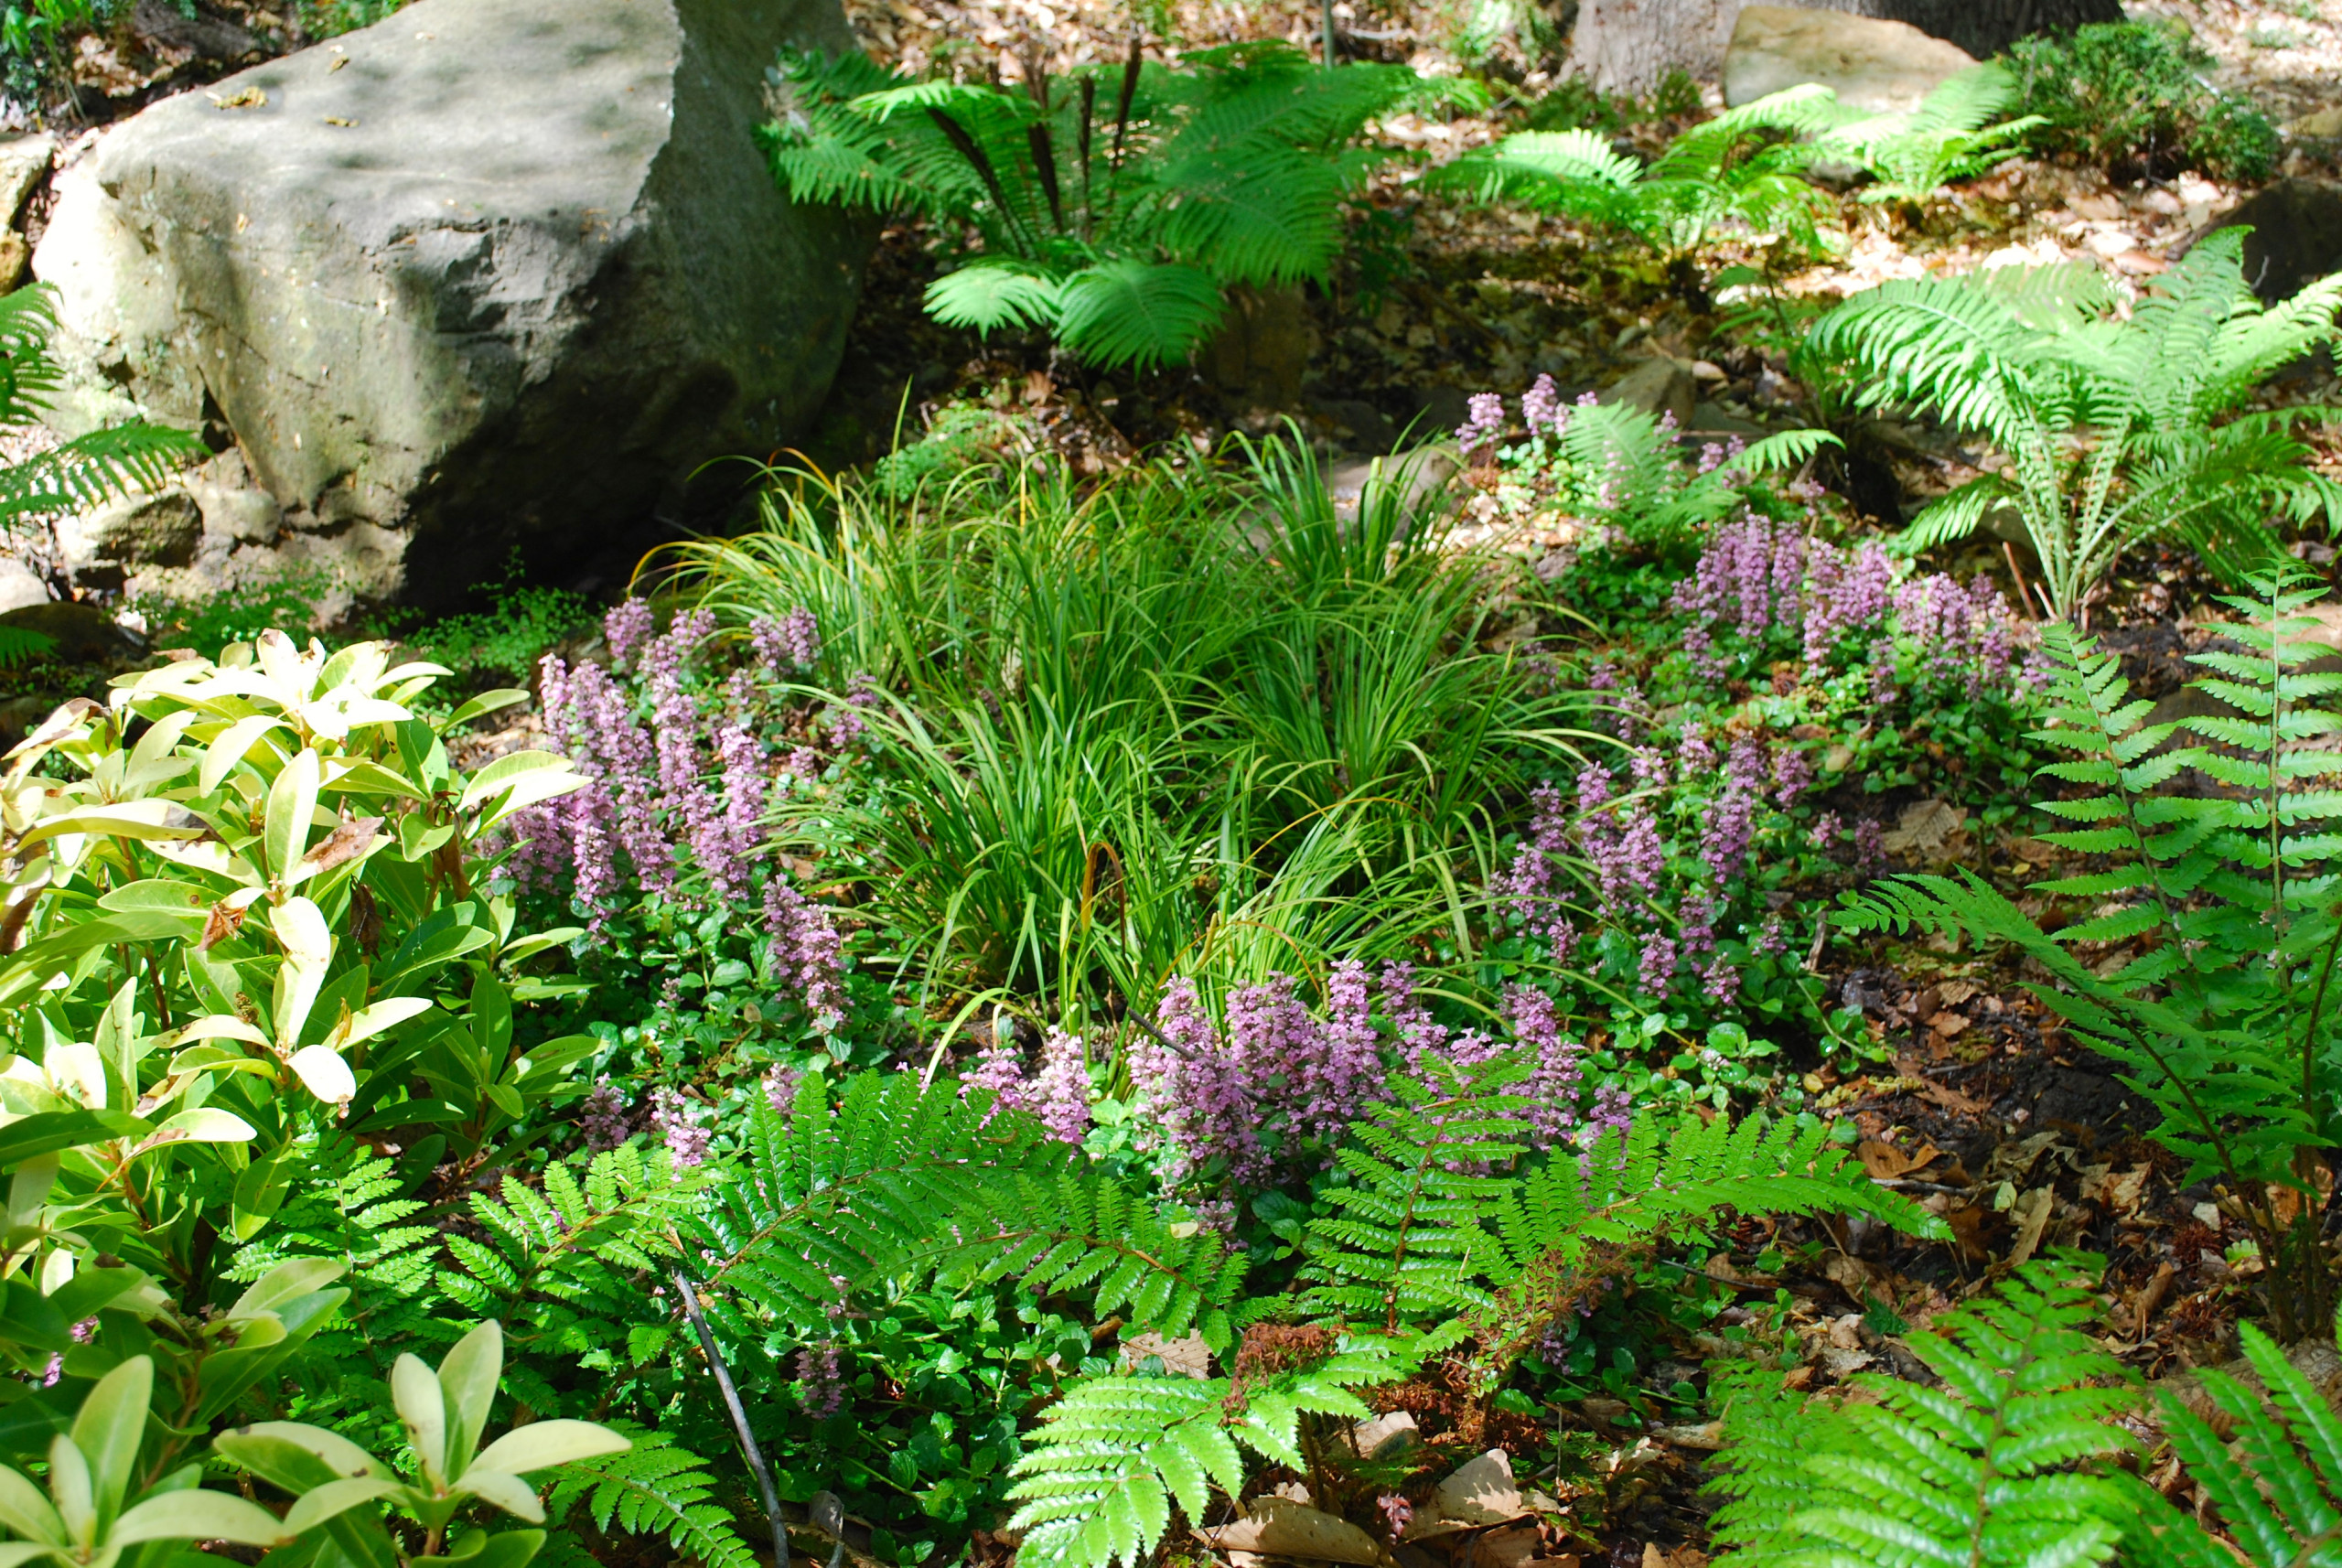 Japanese-inspired fern garden